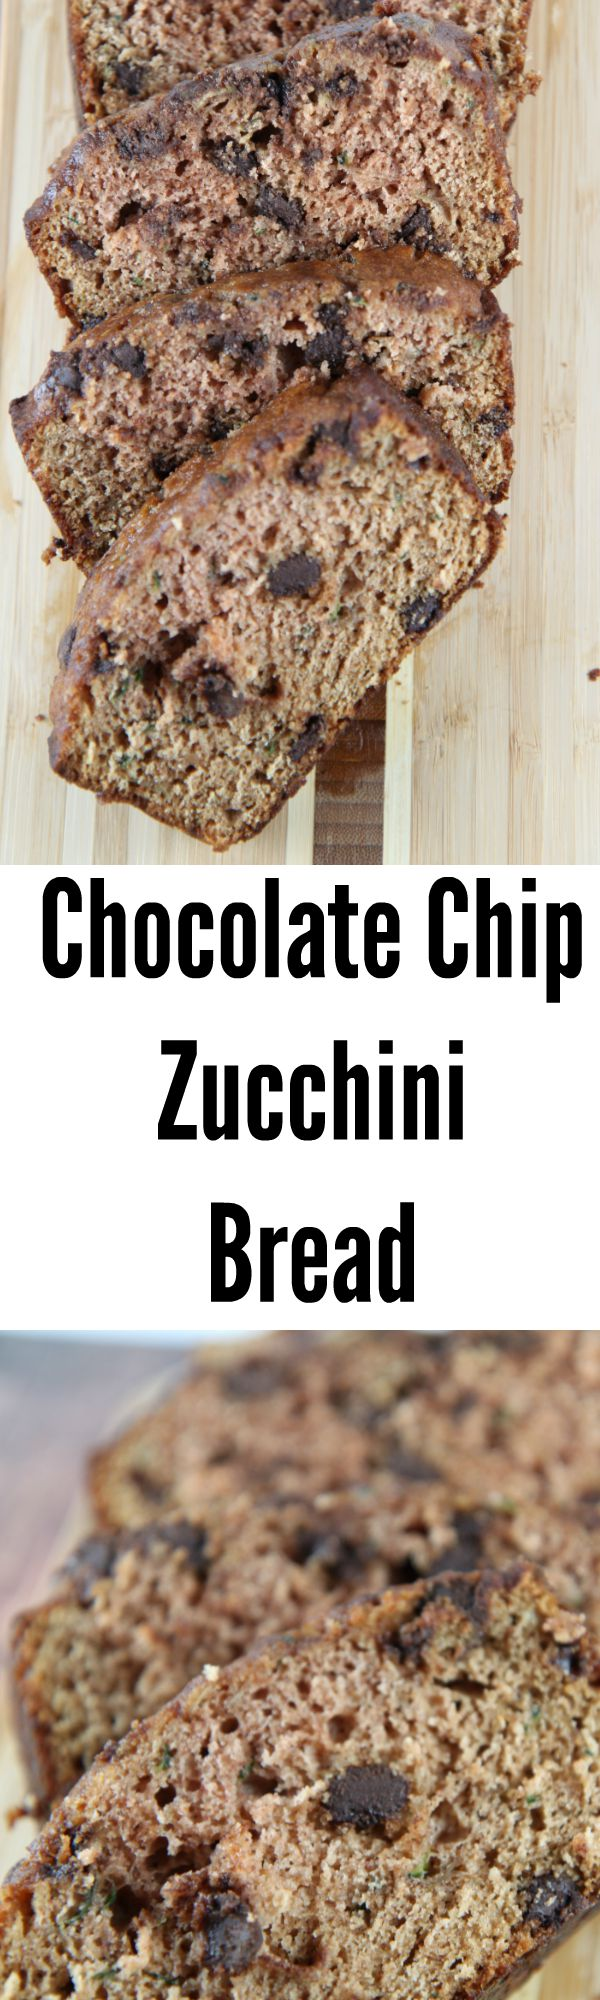 Easy Chocolate Chip Zucchini Bread Recipe